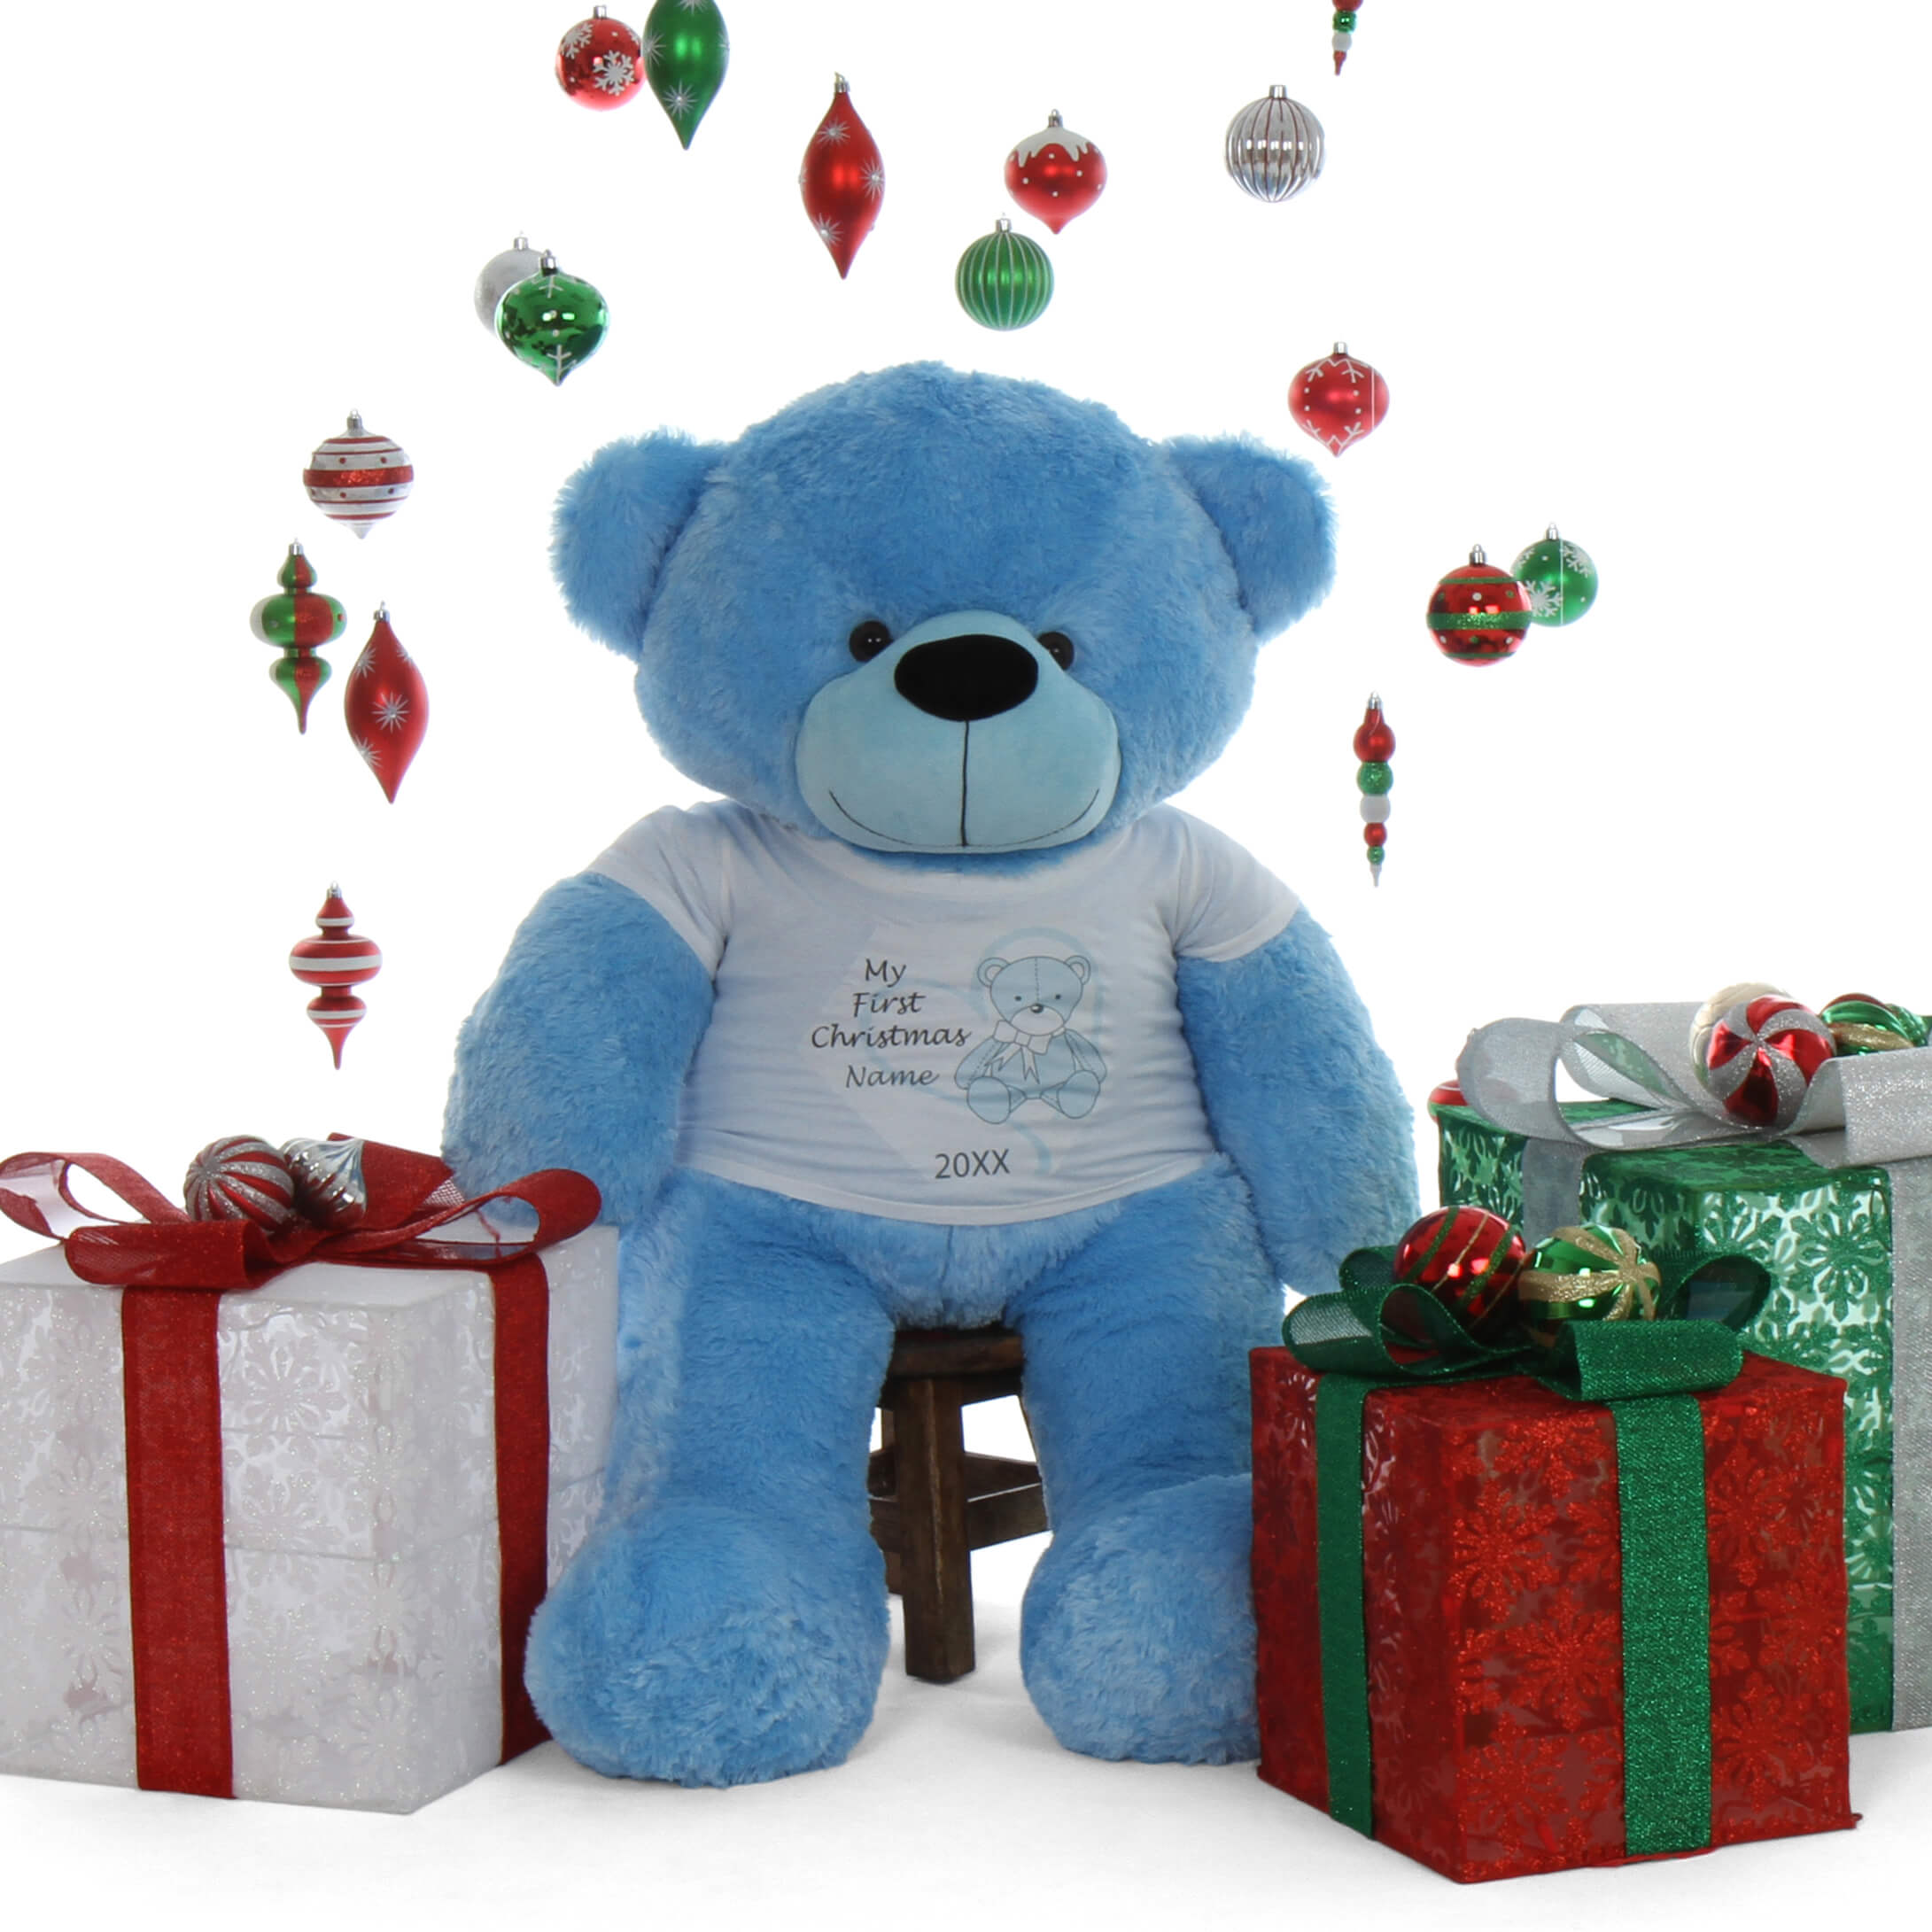 -my-first-christmas-personalized-teddy-bear-life-size-48in-blue-happy-cuddles-1.jpg